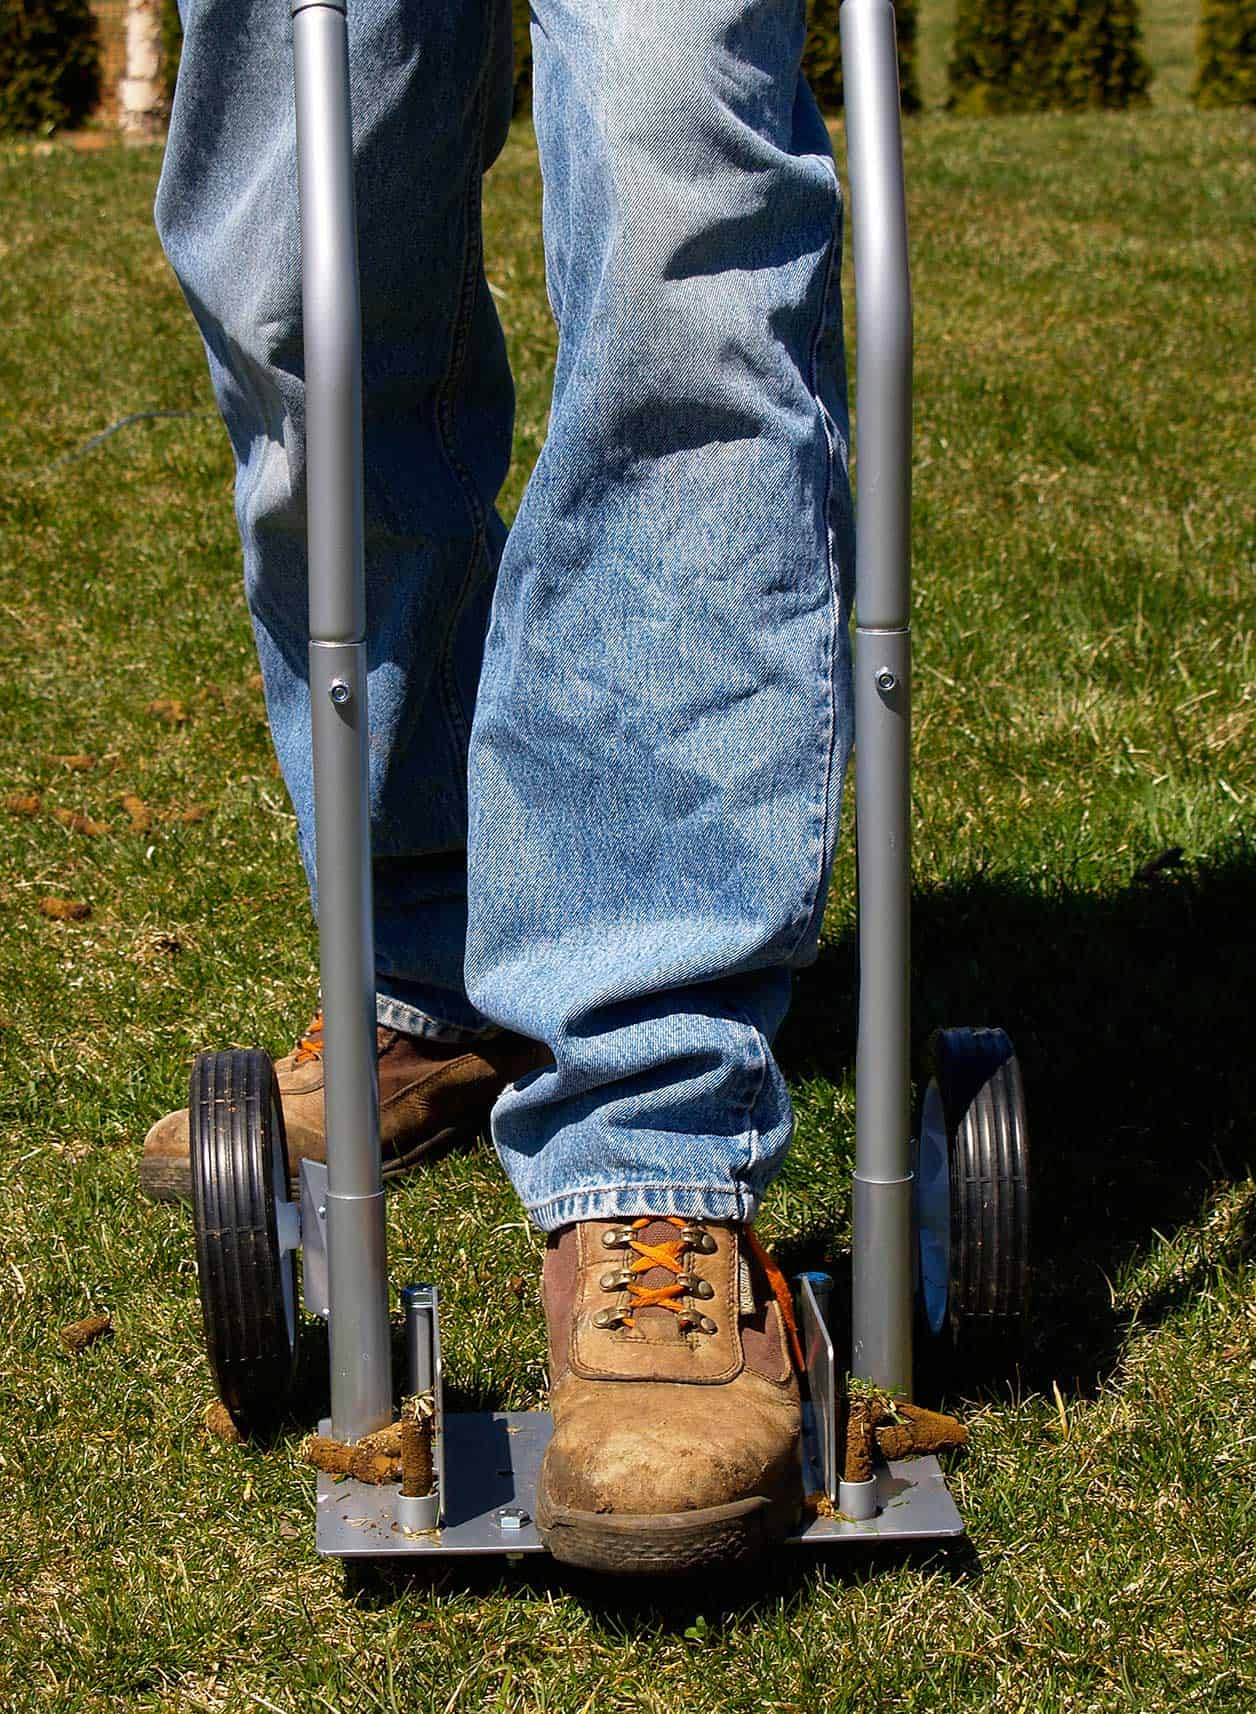 Step 'N Tilt Core Lawn Aerator Review